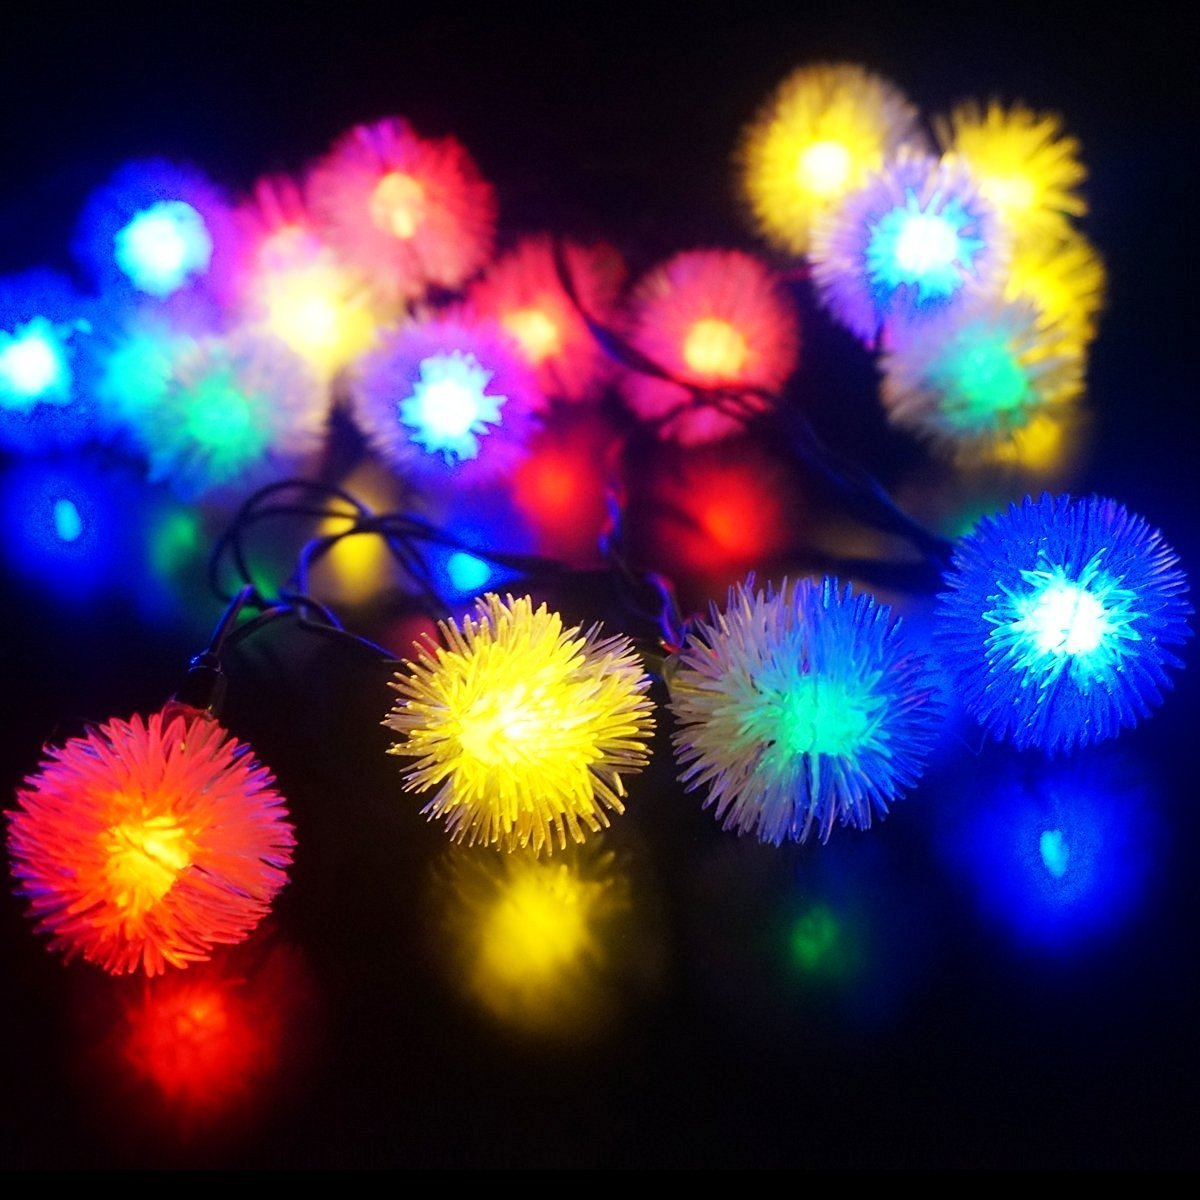 fashionlite solar lights 50 leds chuzzle ball solar powered string lights outdoor christmas lights garden yard